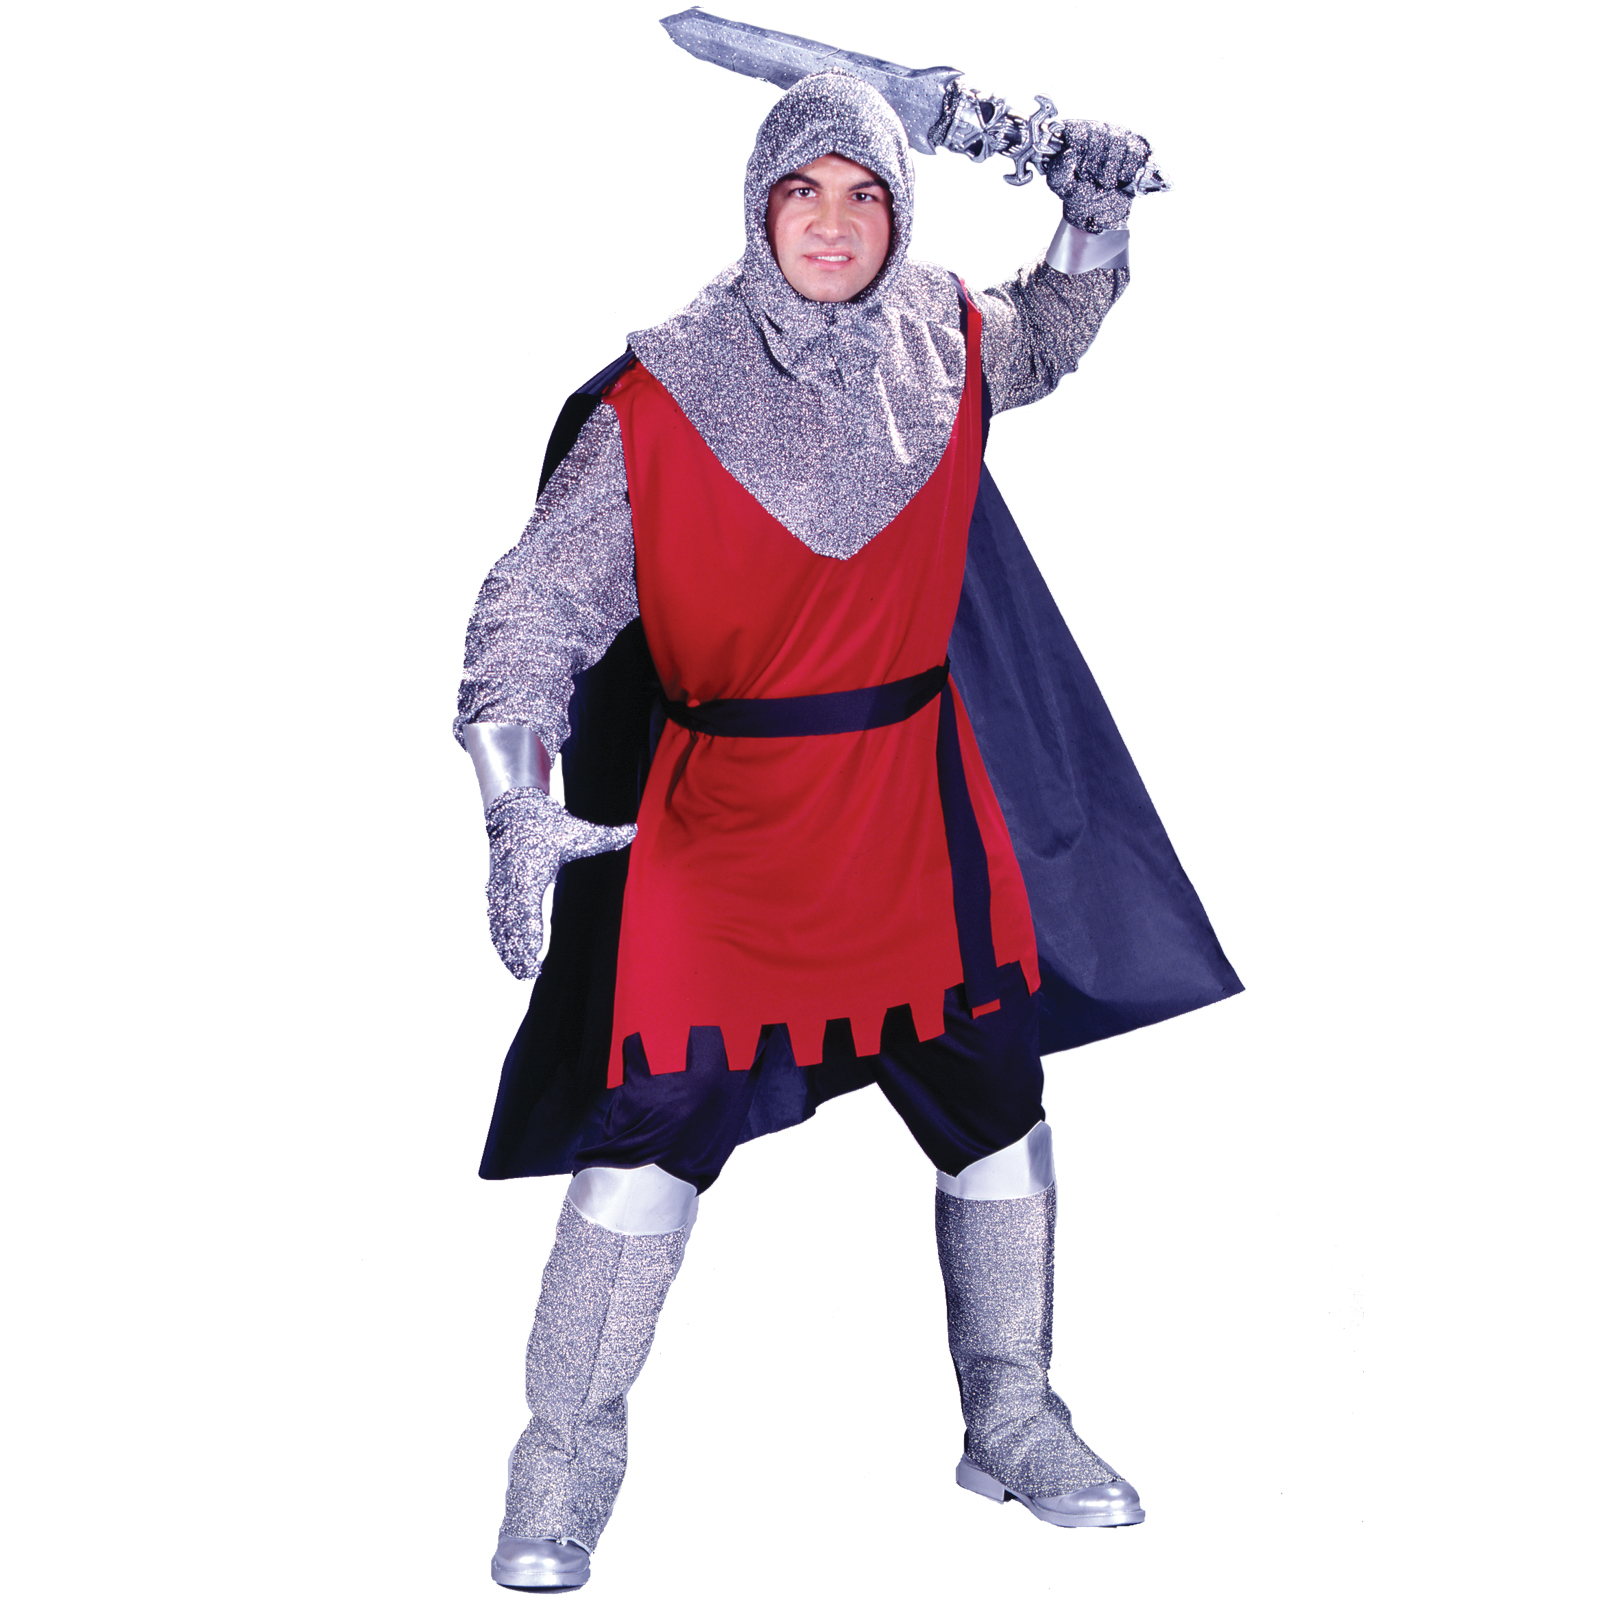 Medieval Knight - adults medieval halloween costumes, renaissance costumes for adults